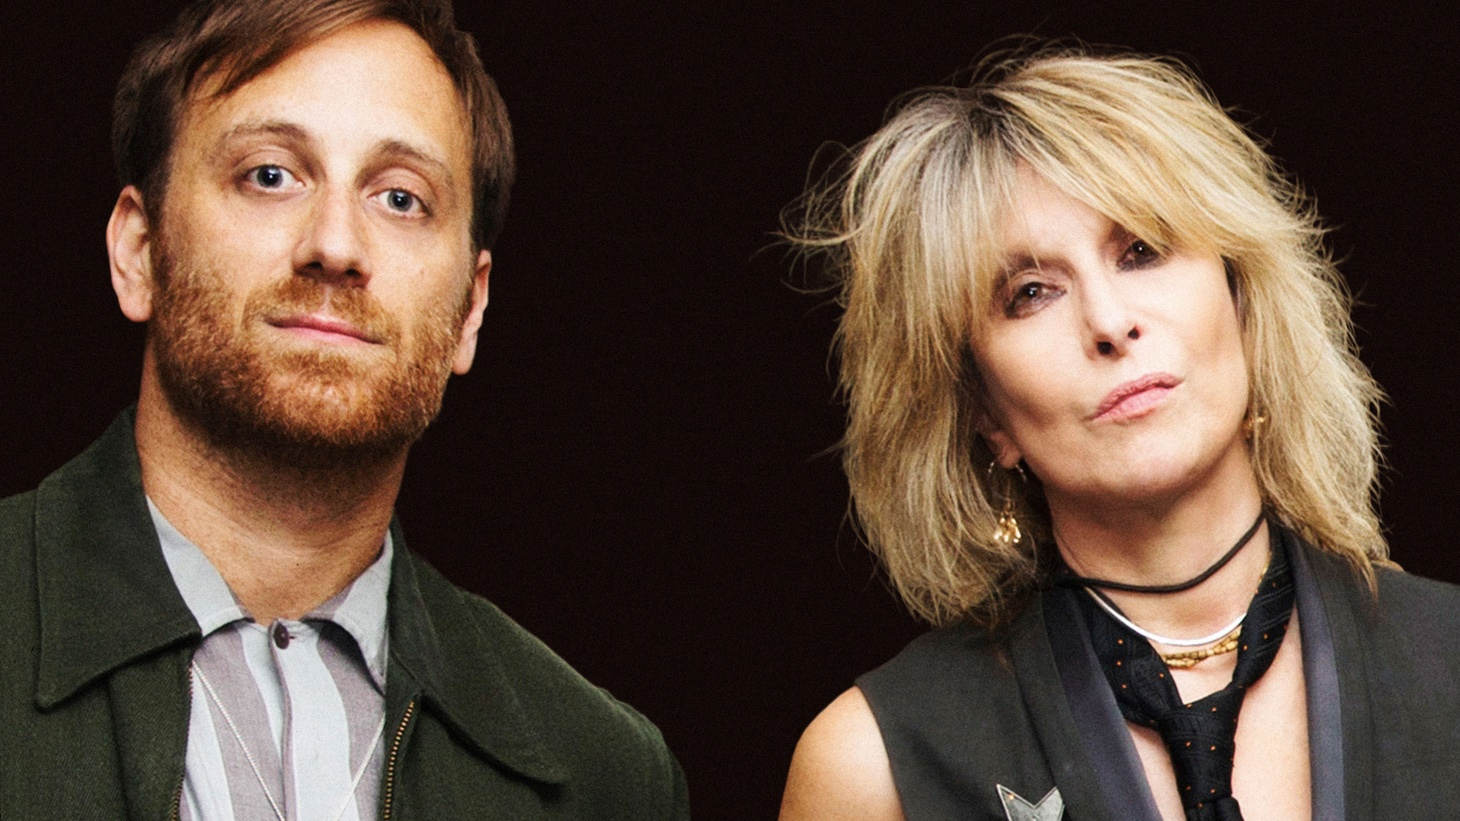 The Pretenders is back with its first new album in five years.